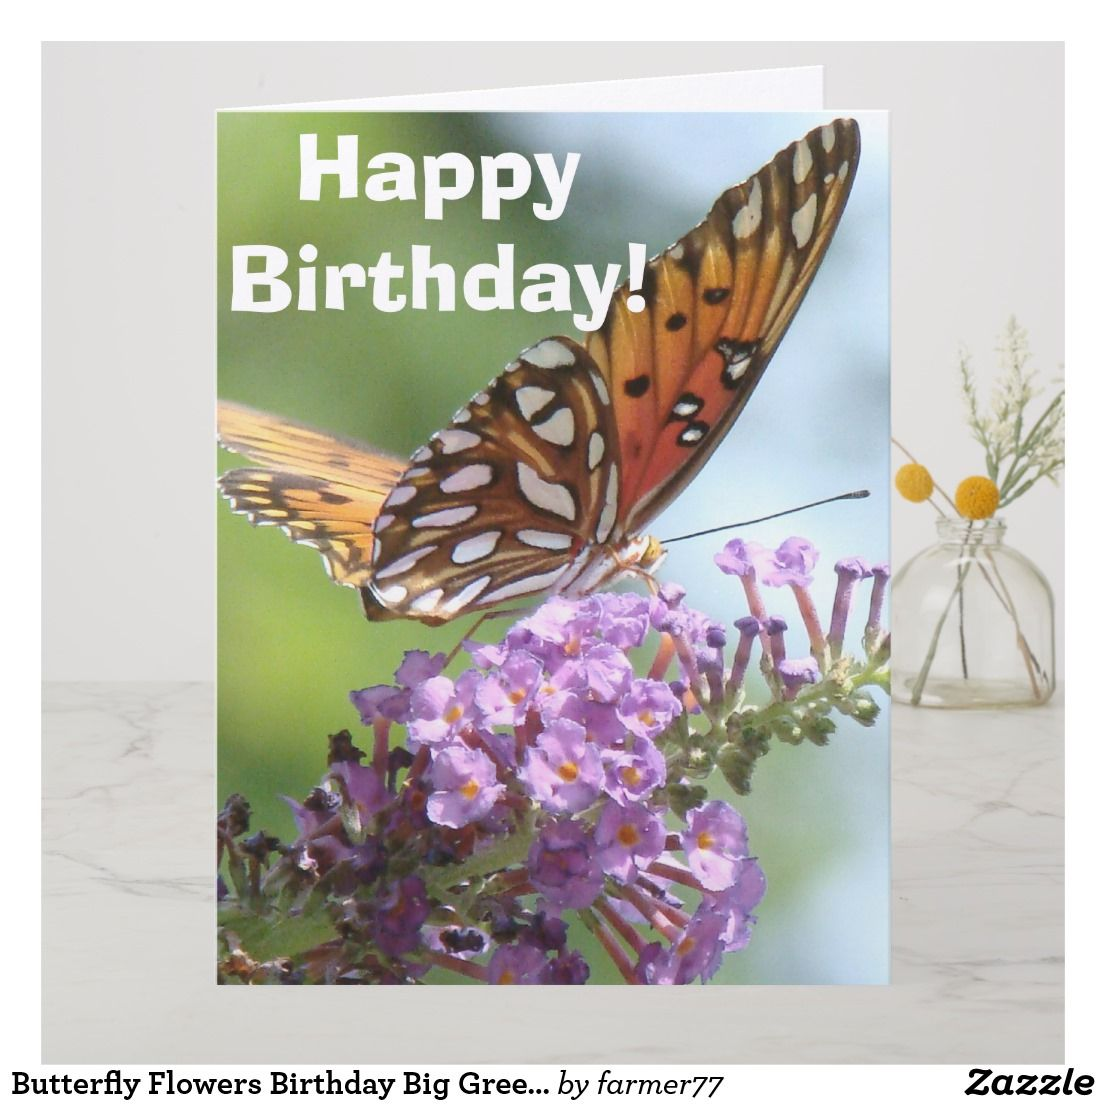 butterfly flowers birthday big greeting card - Big Greeting Cards